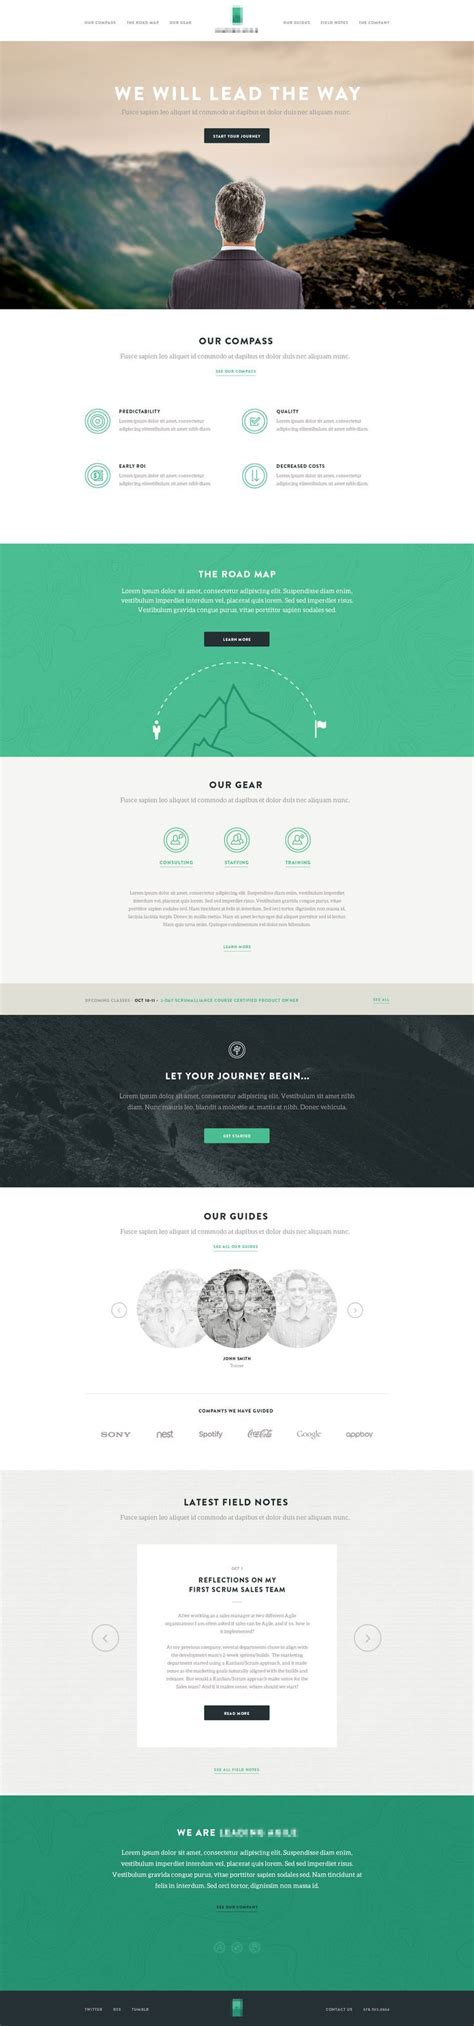 web layout design php likes the whole deal use of color and white space the